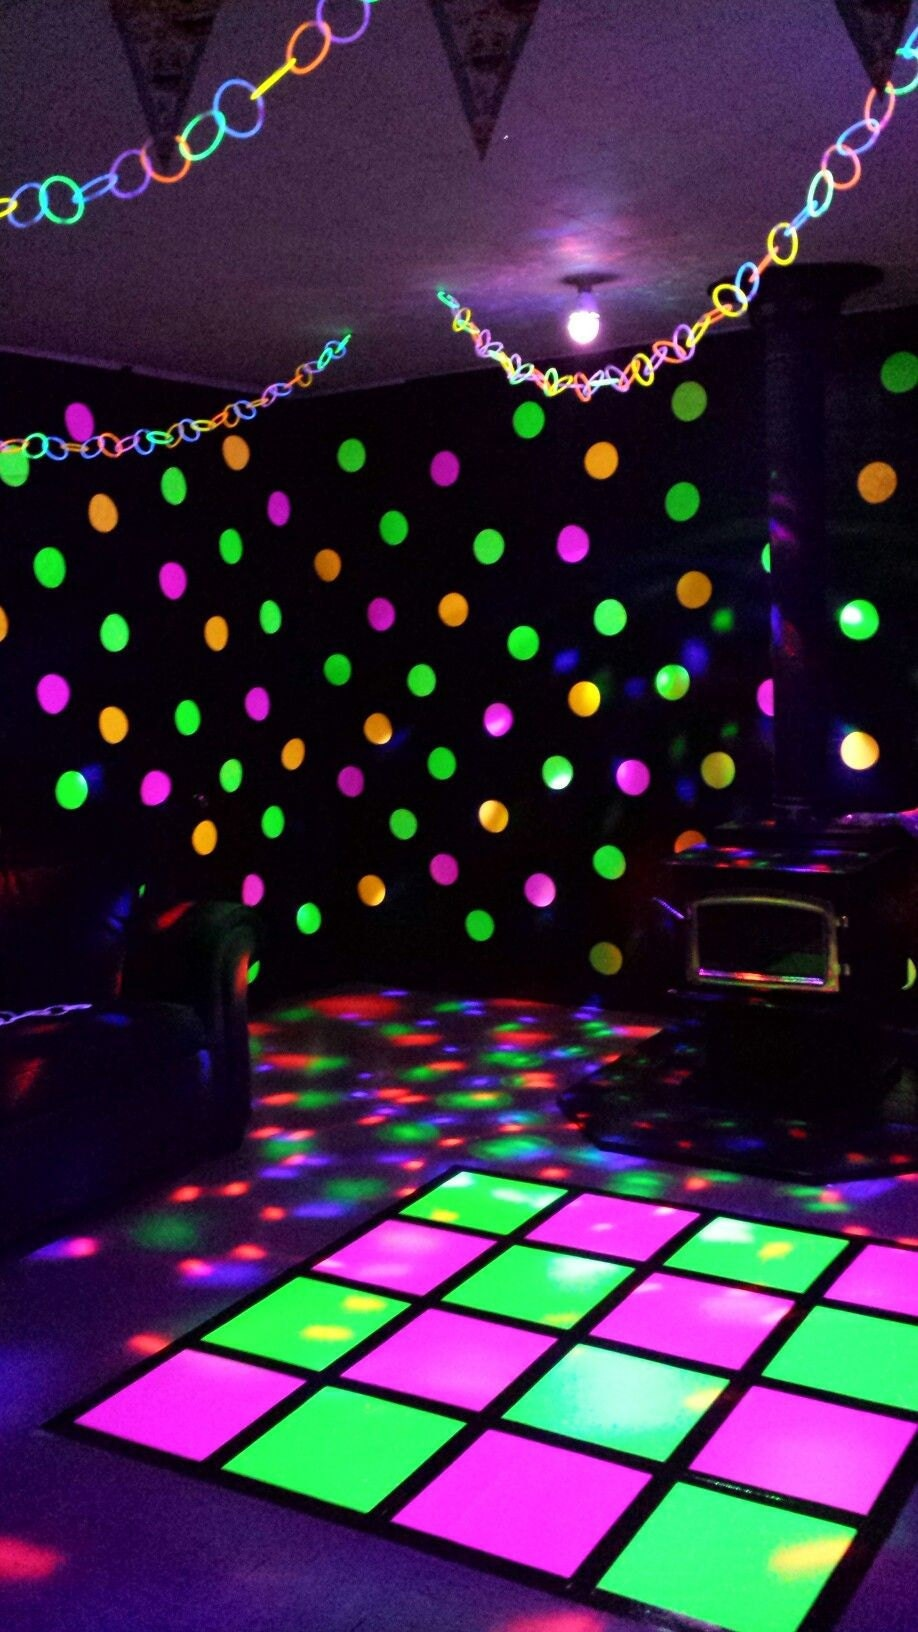 neon poster board on dance floor at a glow black light party